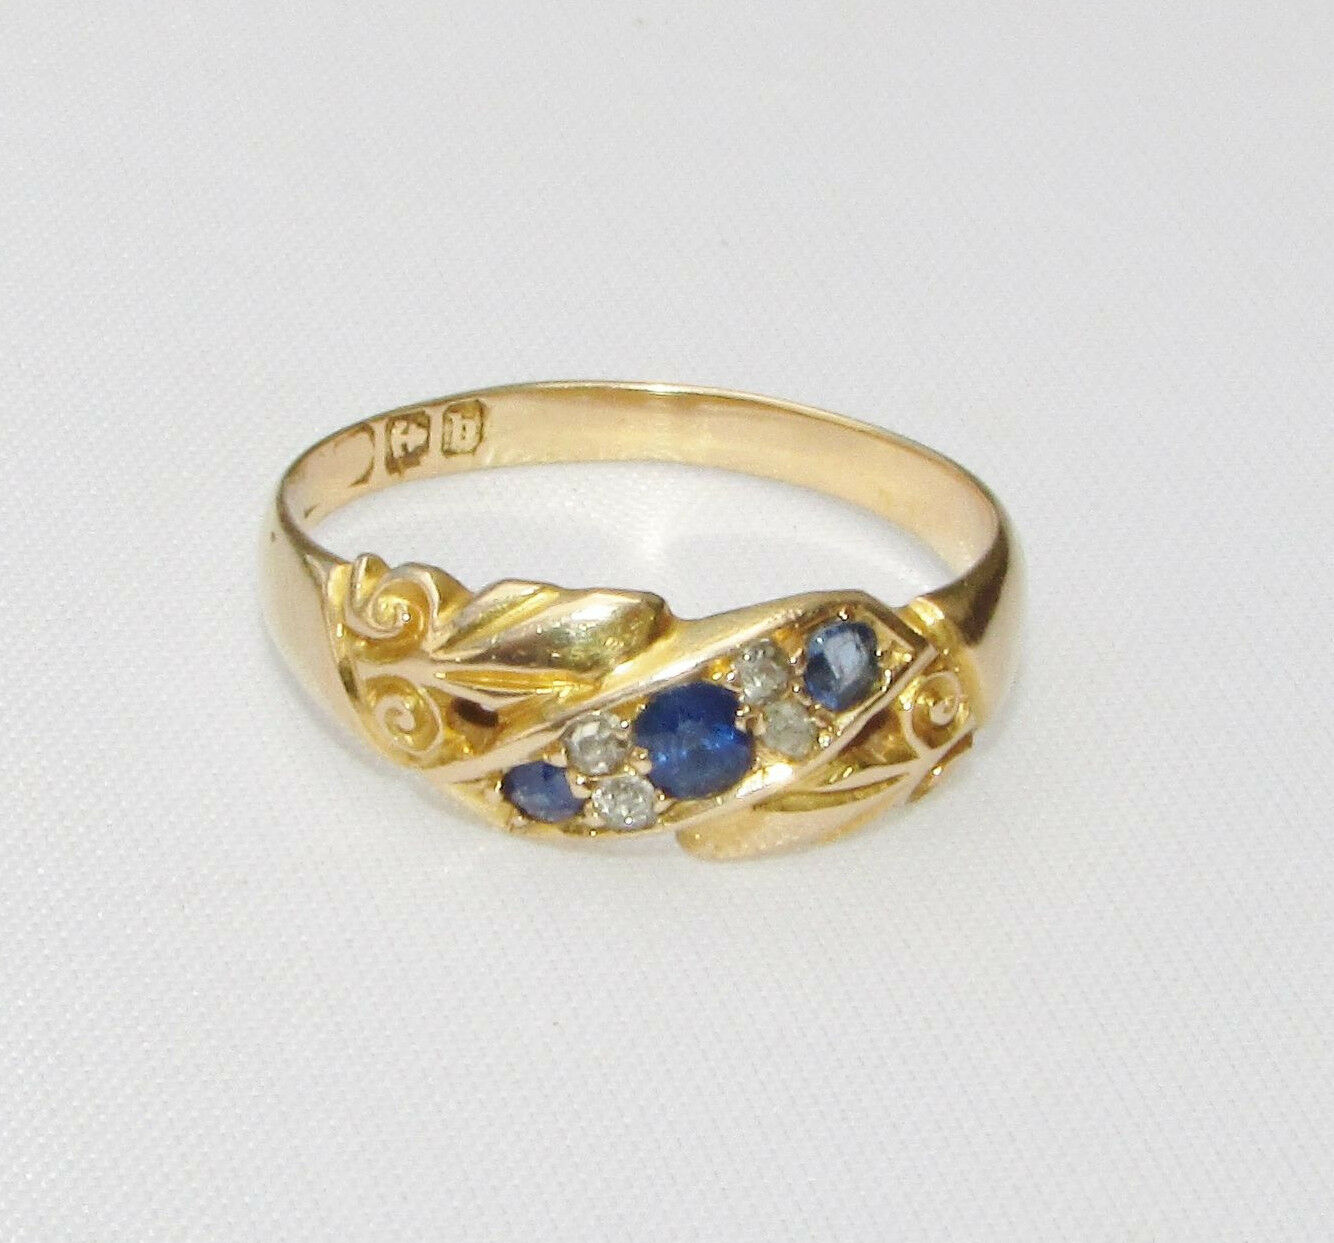 antique edwardian 18ct gold sapphire ring size